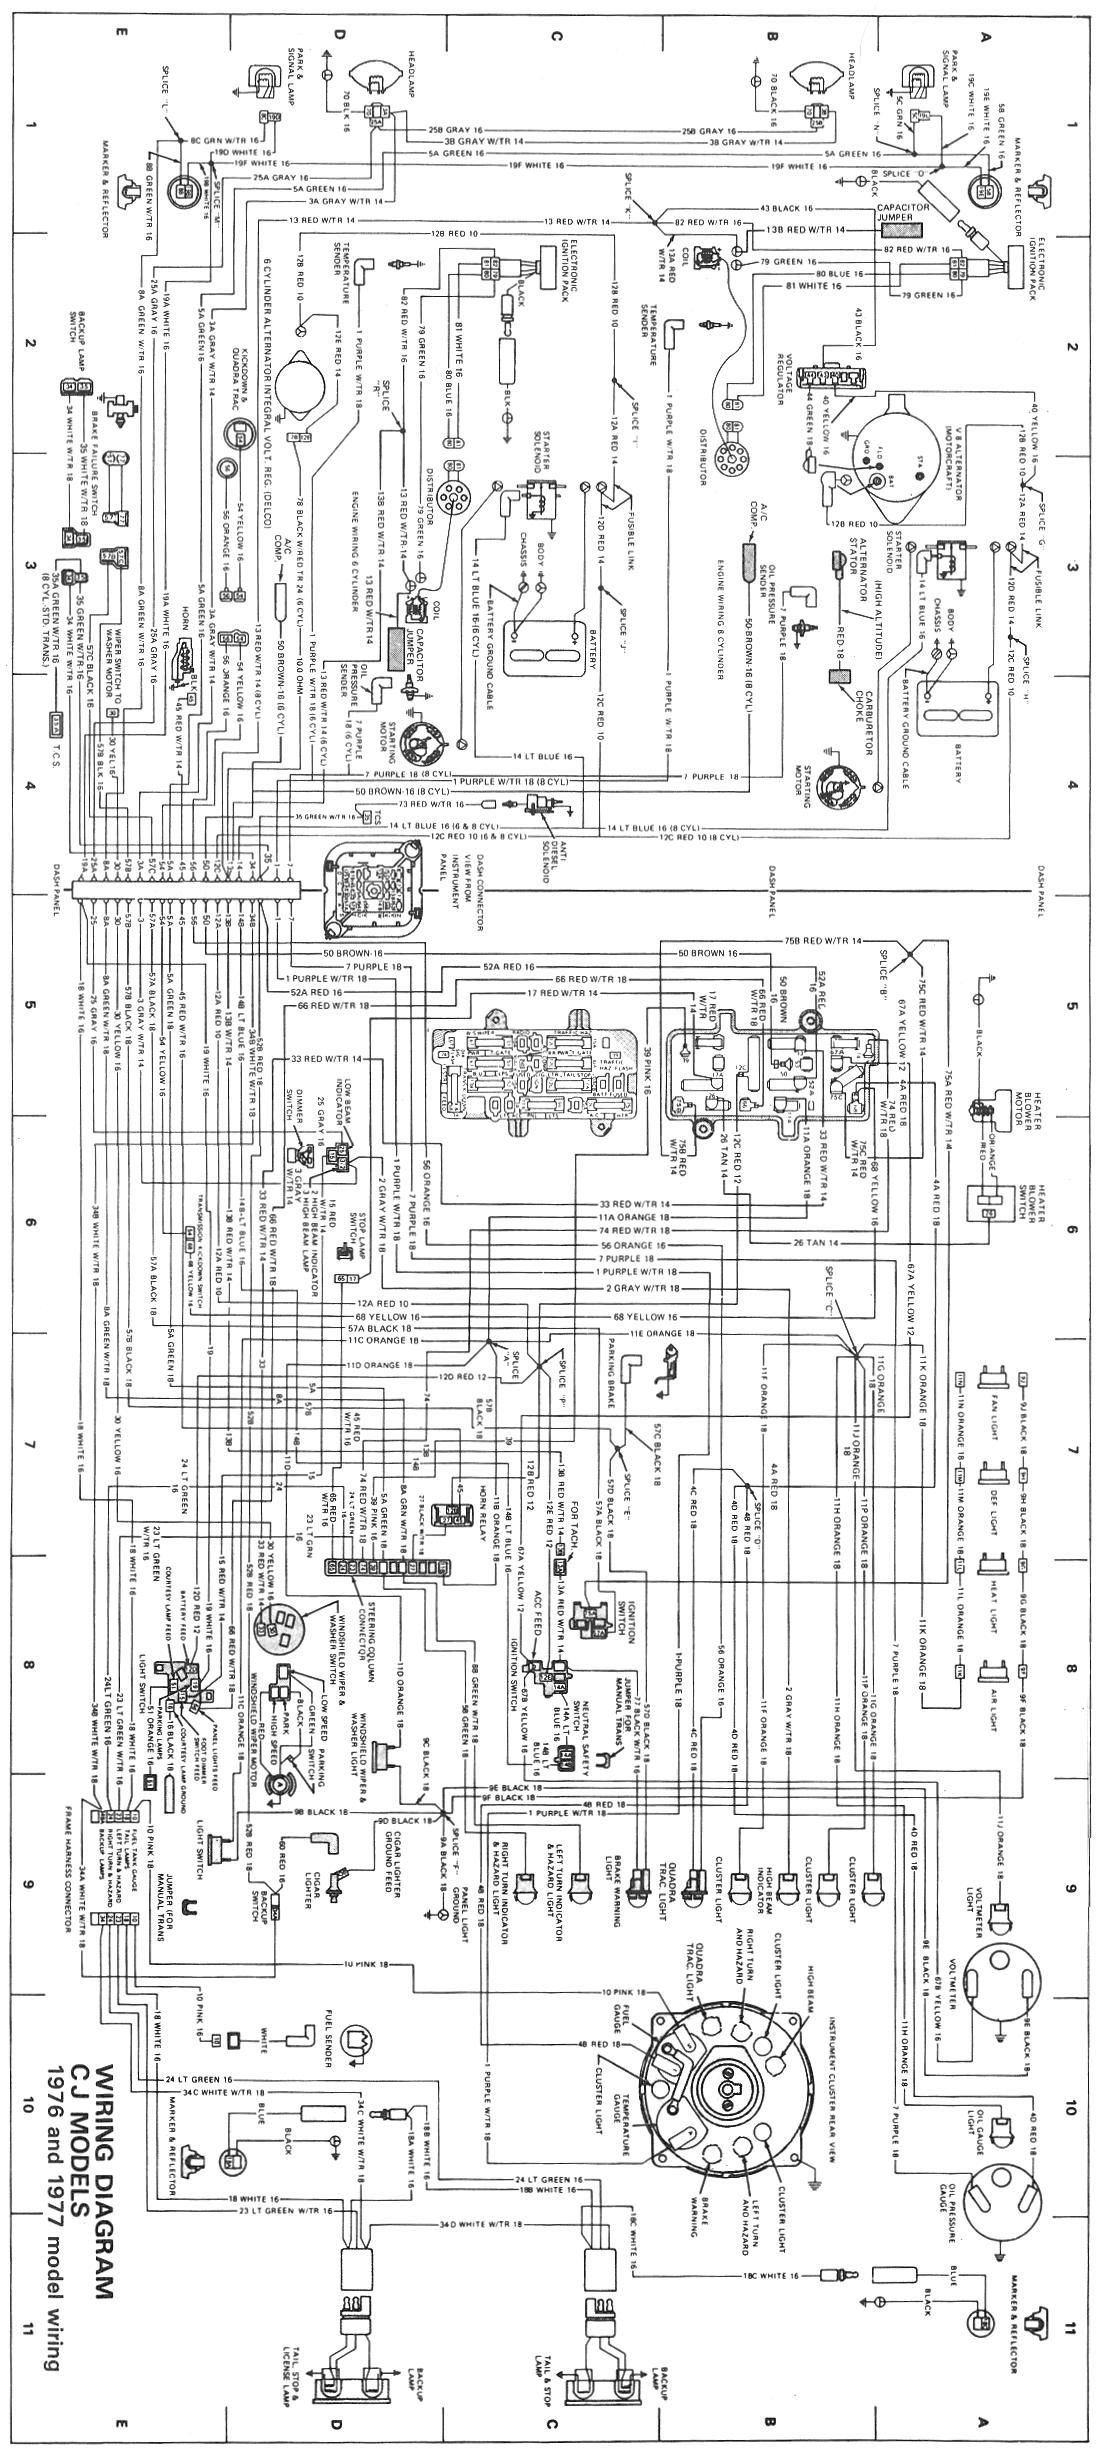 8d25ded6e3673519e155875e09844e5e cj wiring diagram 1976 1977 jpg 1,100�2,459 pixels 1976 jeep cj5 Painless Wiring Harness Diagram at bayanpartner.co